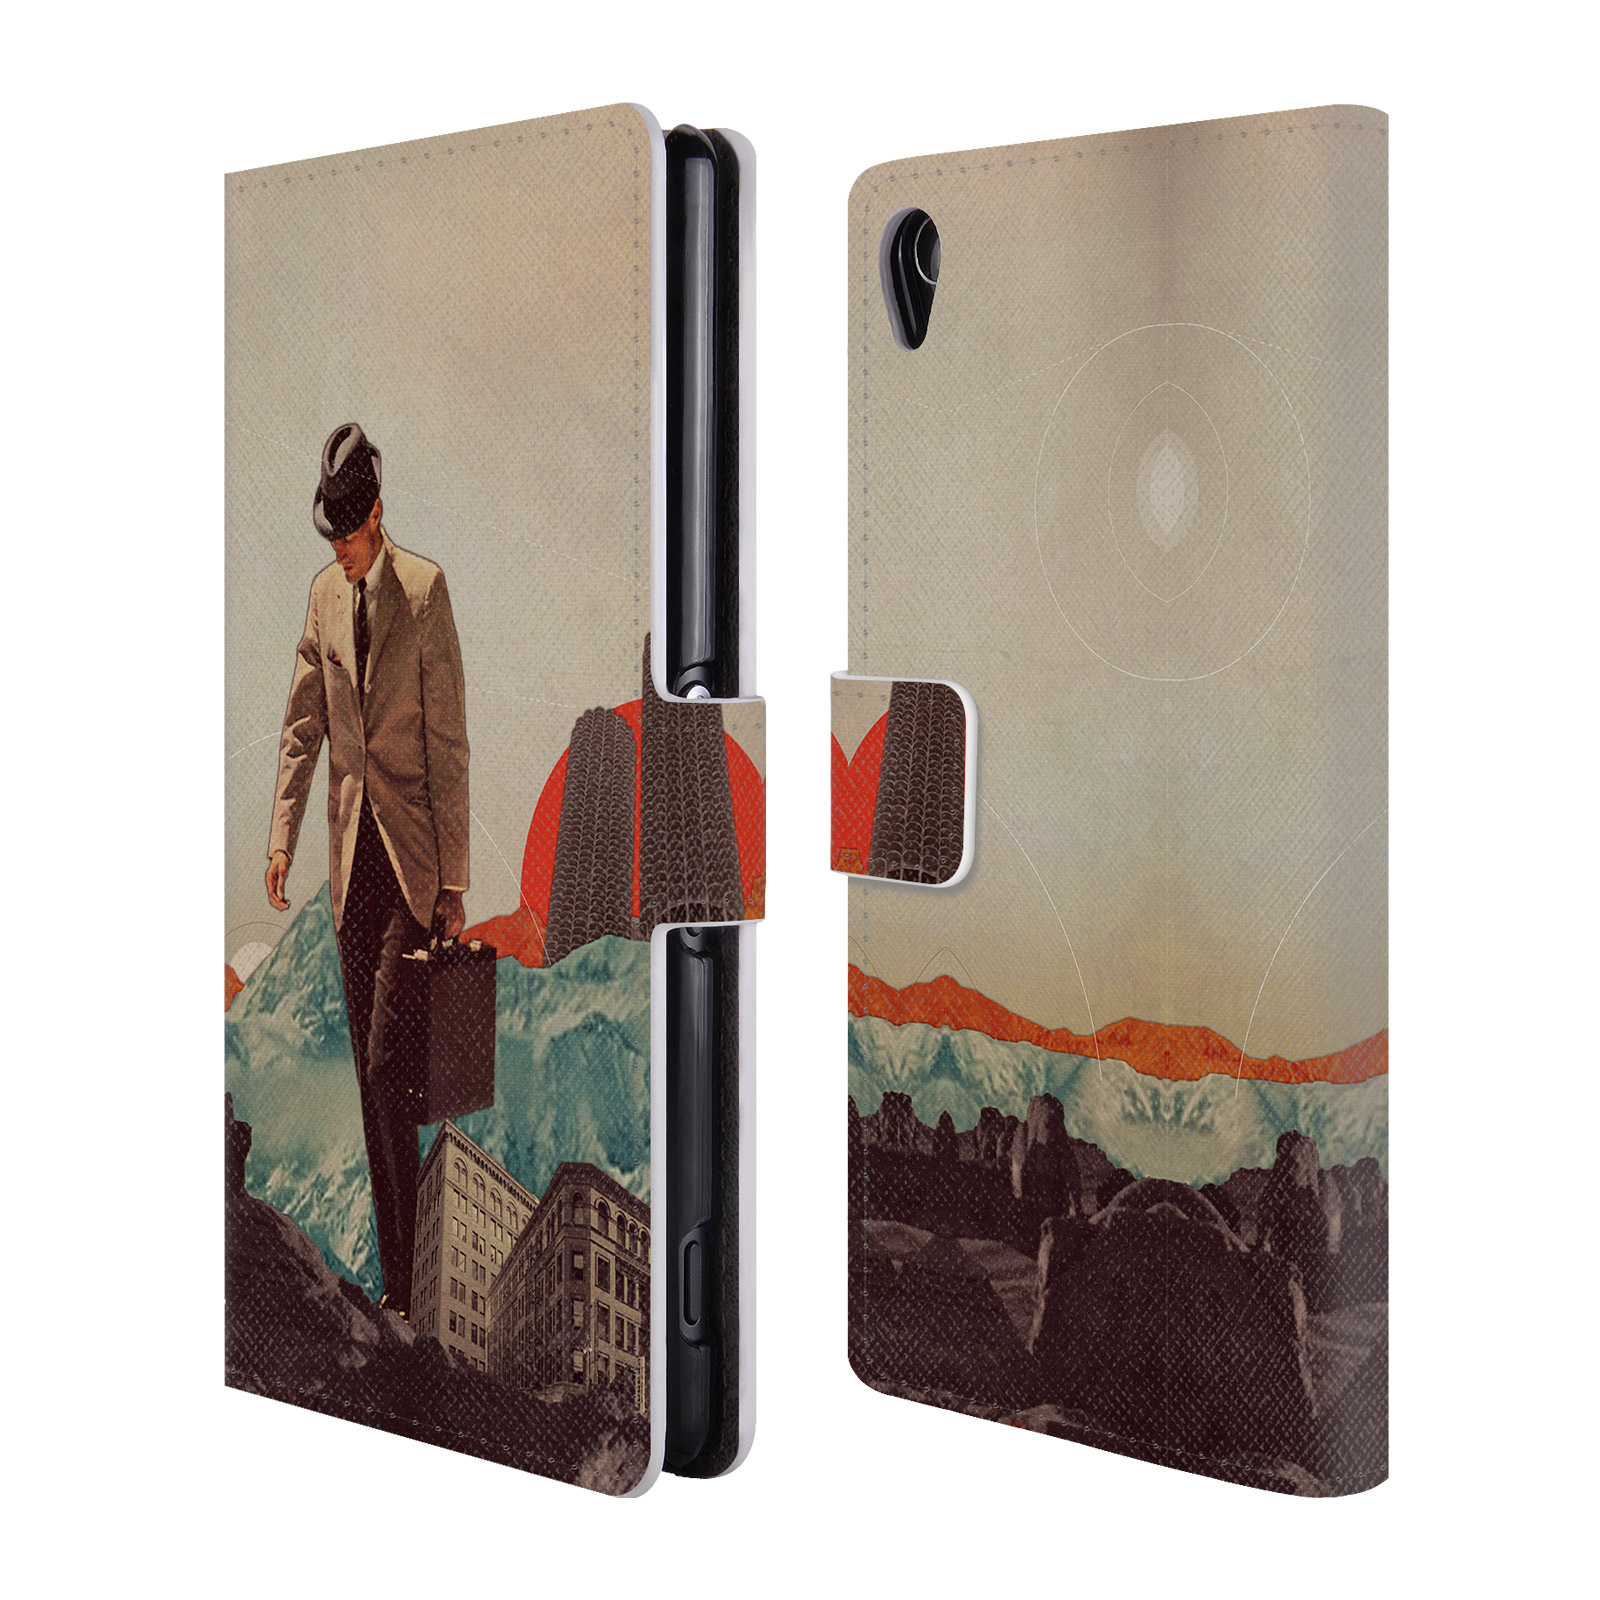 OFFICIAL-FRANK-MOTH-VINTAGE-LEATHER-BOOK-WALLET-CASE-COVER-FOR-SONY-PHONES-1